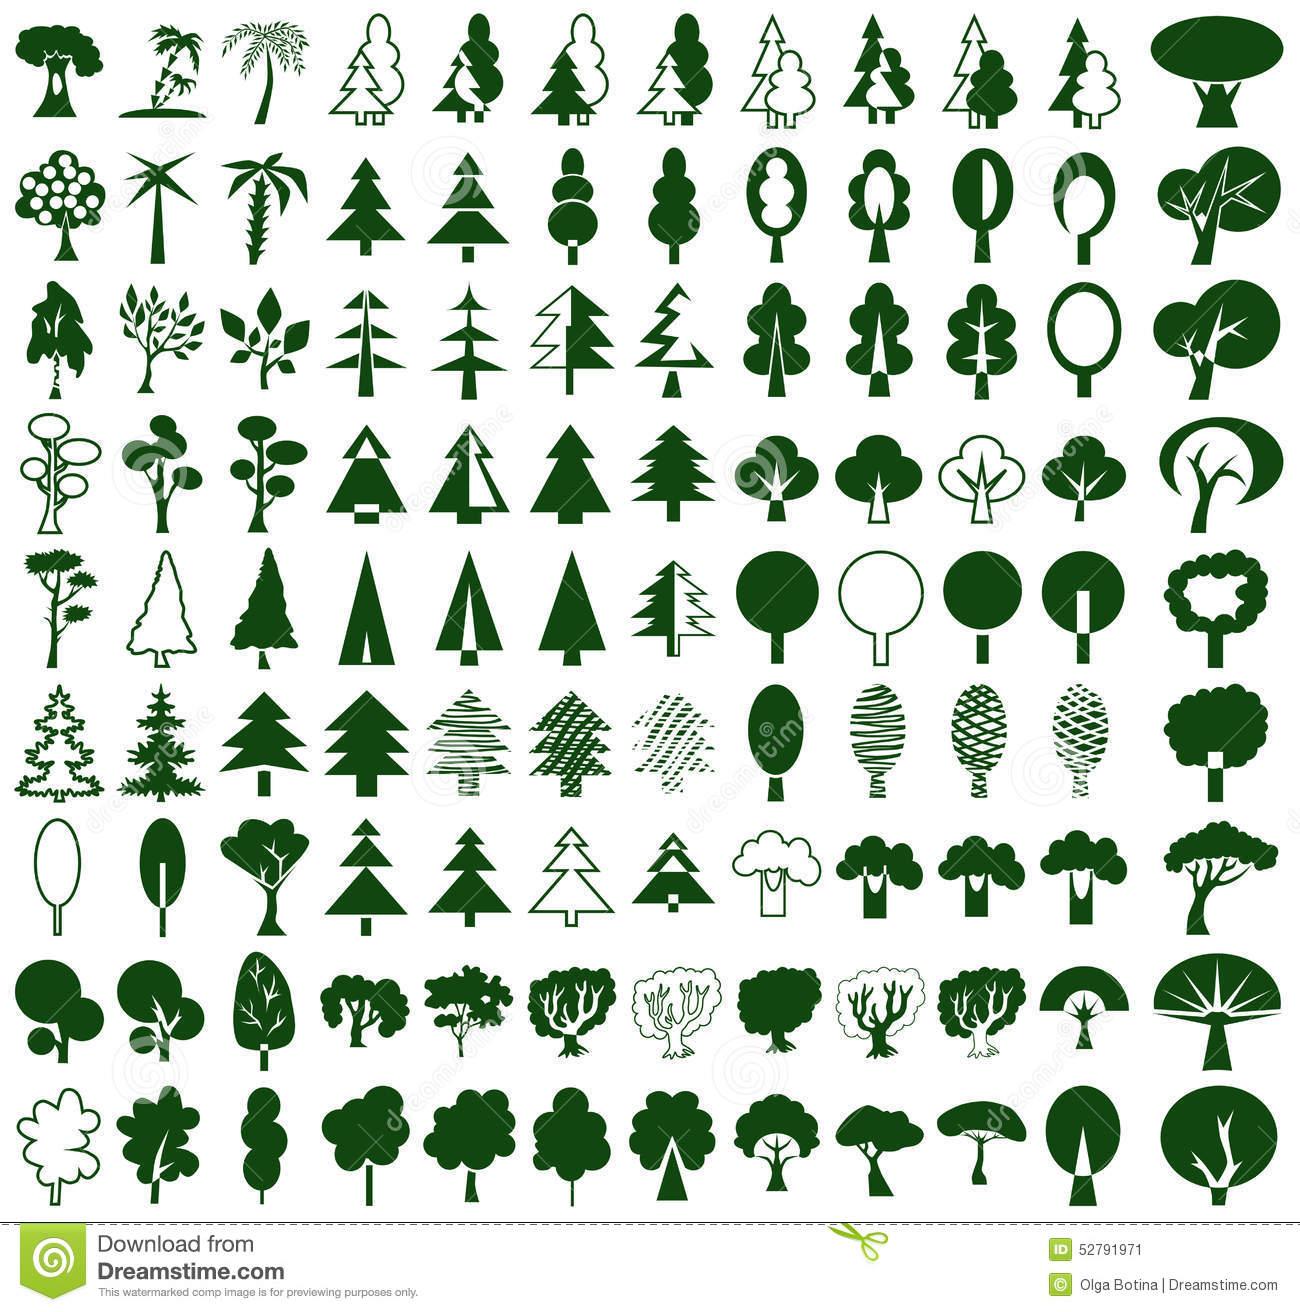 Outline Hollow Tree Stock Illustrations – 39 Outline Hollow Tree ...